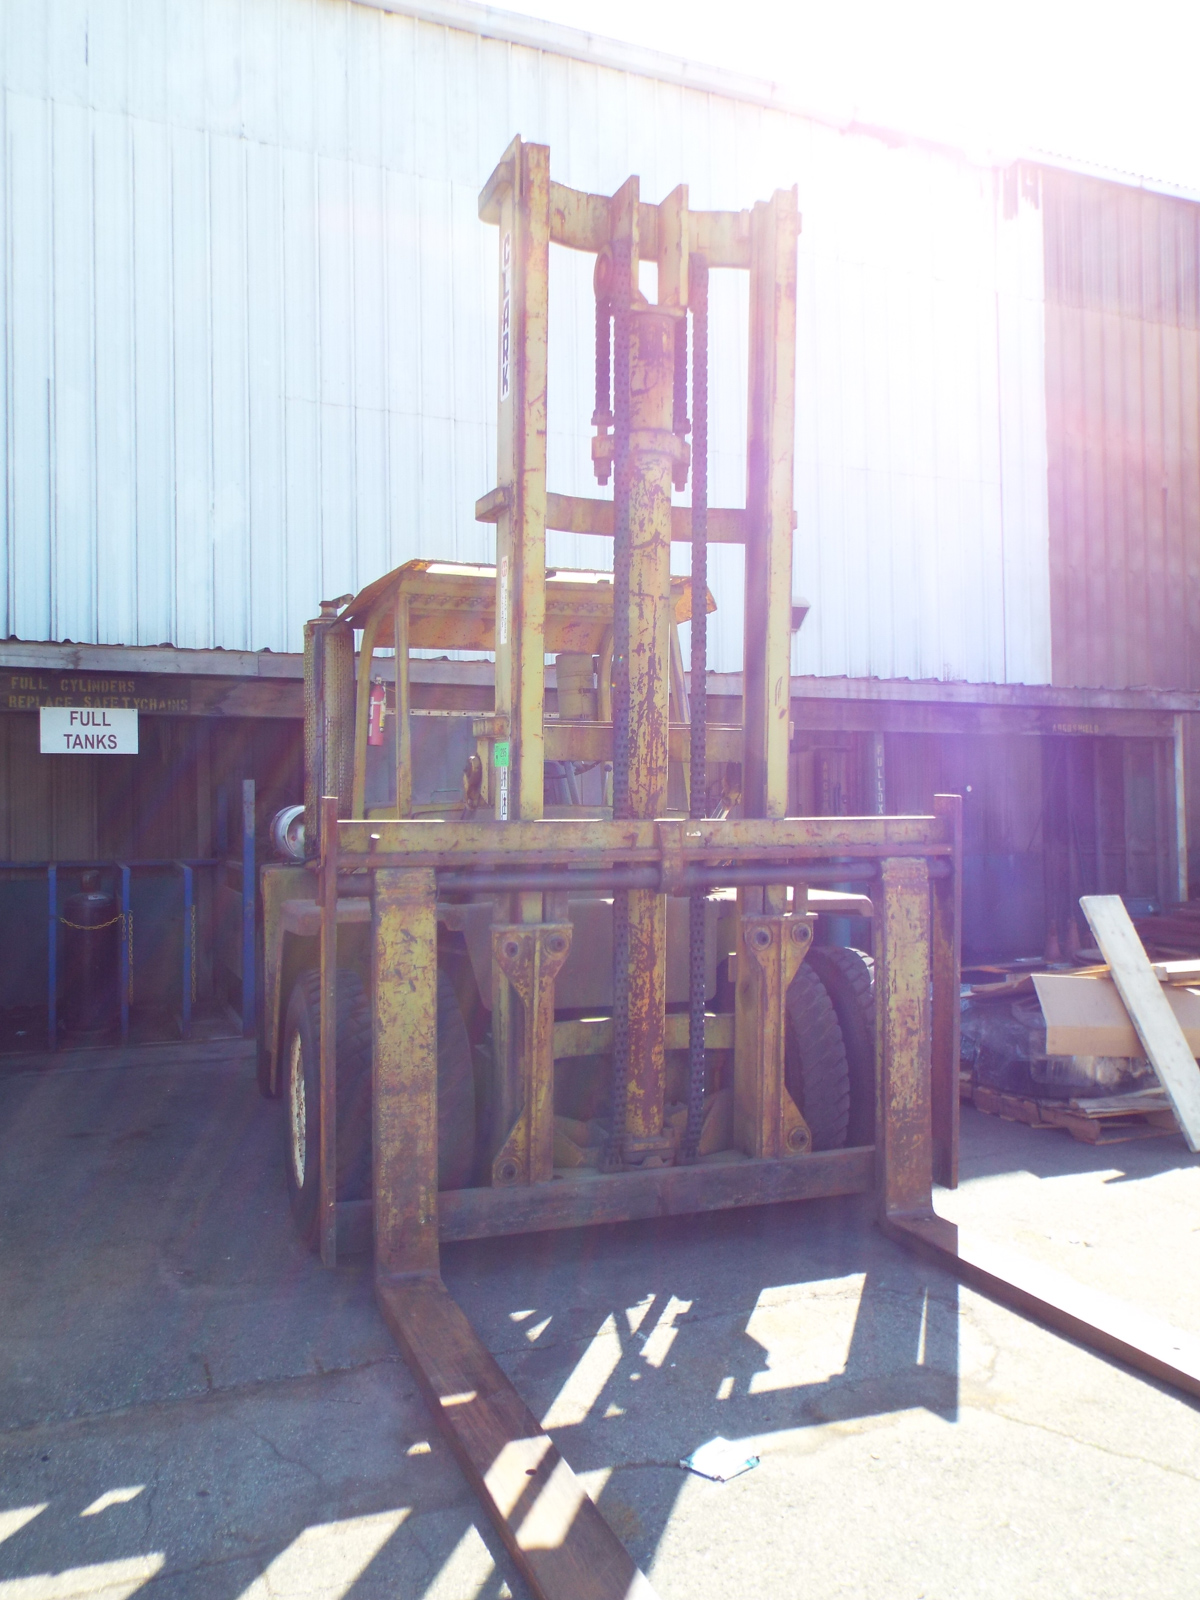 """CLARK C500Y160 LPG OUTDOOR FORKLIFT WITH 16,000 LB. CAPACITY, 210"""" VERTICAL LIFT, PNEUMATIC TIRES - Image 2 of 8"""